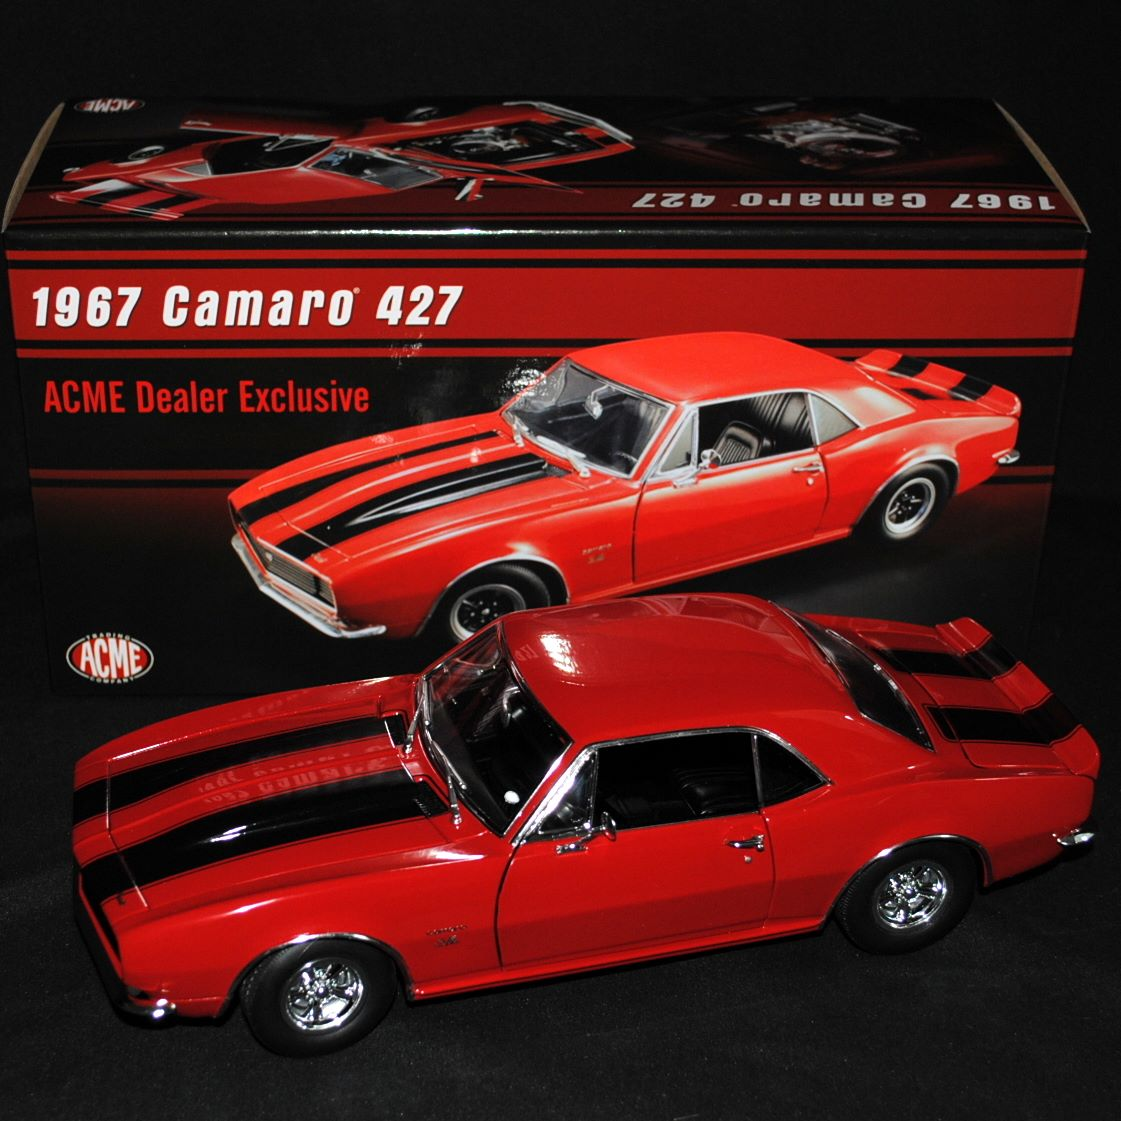 ディーラーモデル ACME 1:18 1967年モデル シボレー カマロ 427 SS レッド1967 Chevrolet Camaro 427 Red Acme Dealer Exclusive Limited Edition to 604 pieces Worldwide 1/18 Diecast Model Car by Acme